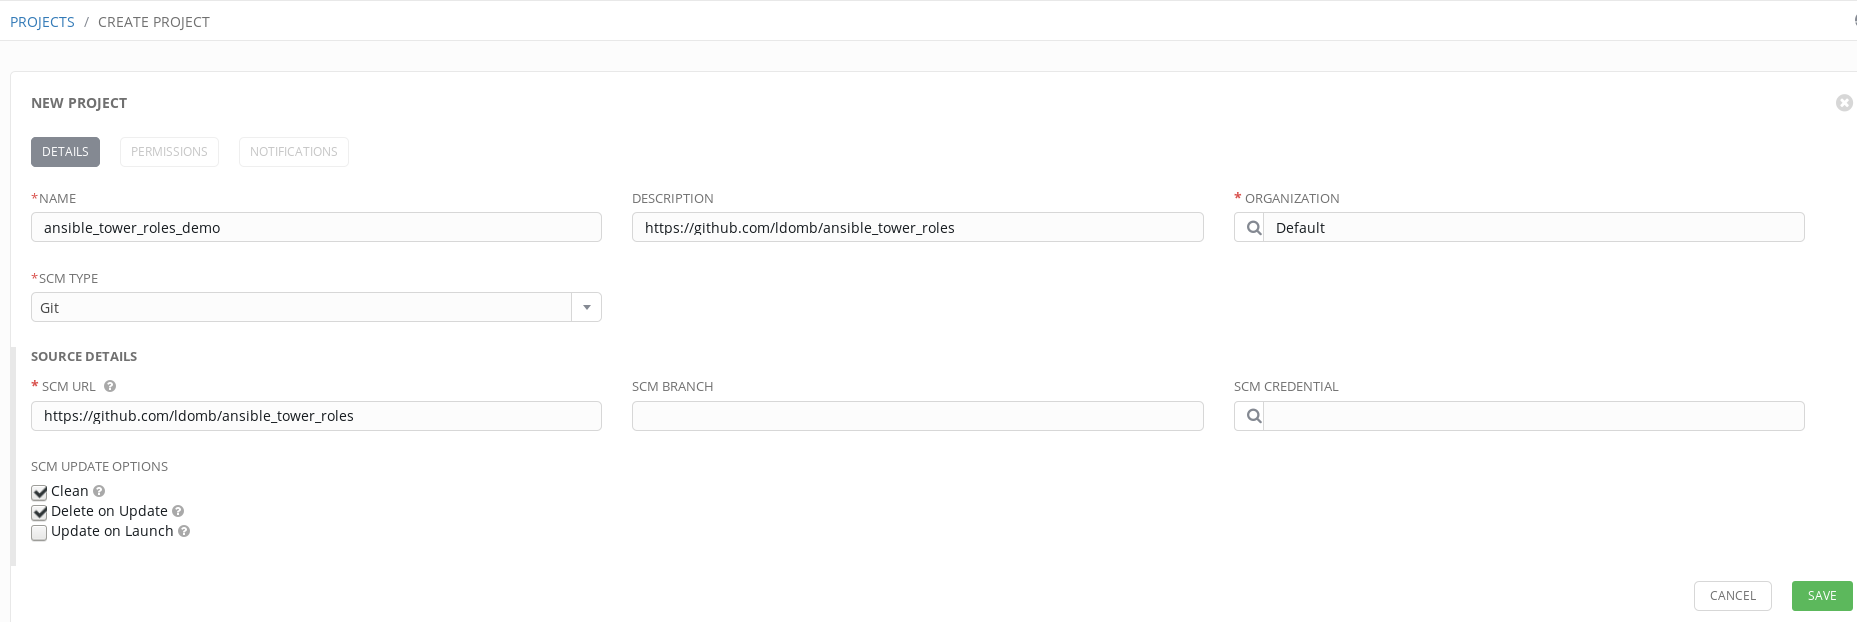 Deploy and build containers on Red Hat OpenShift Container